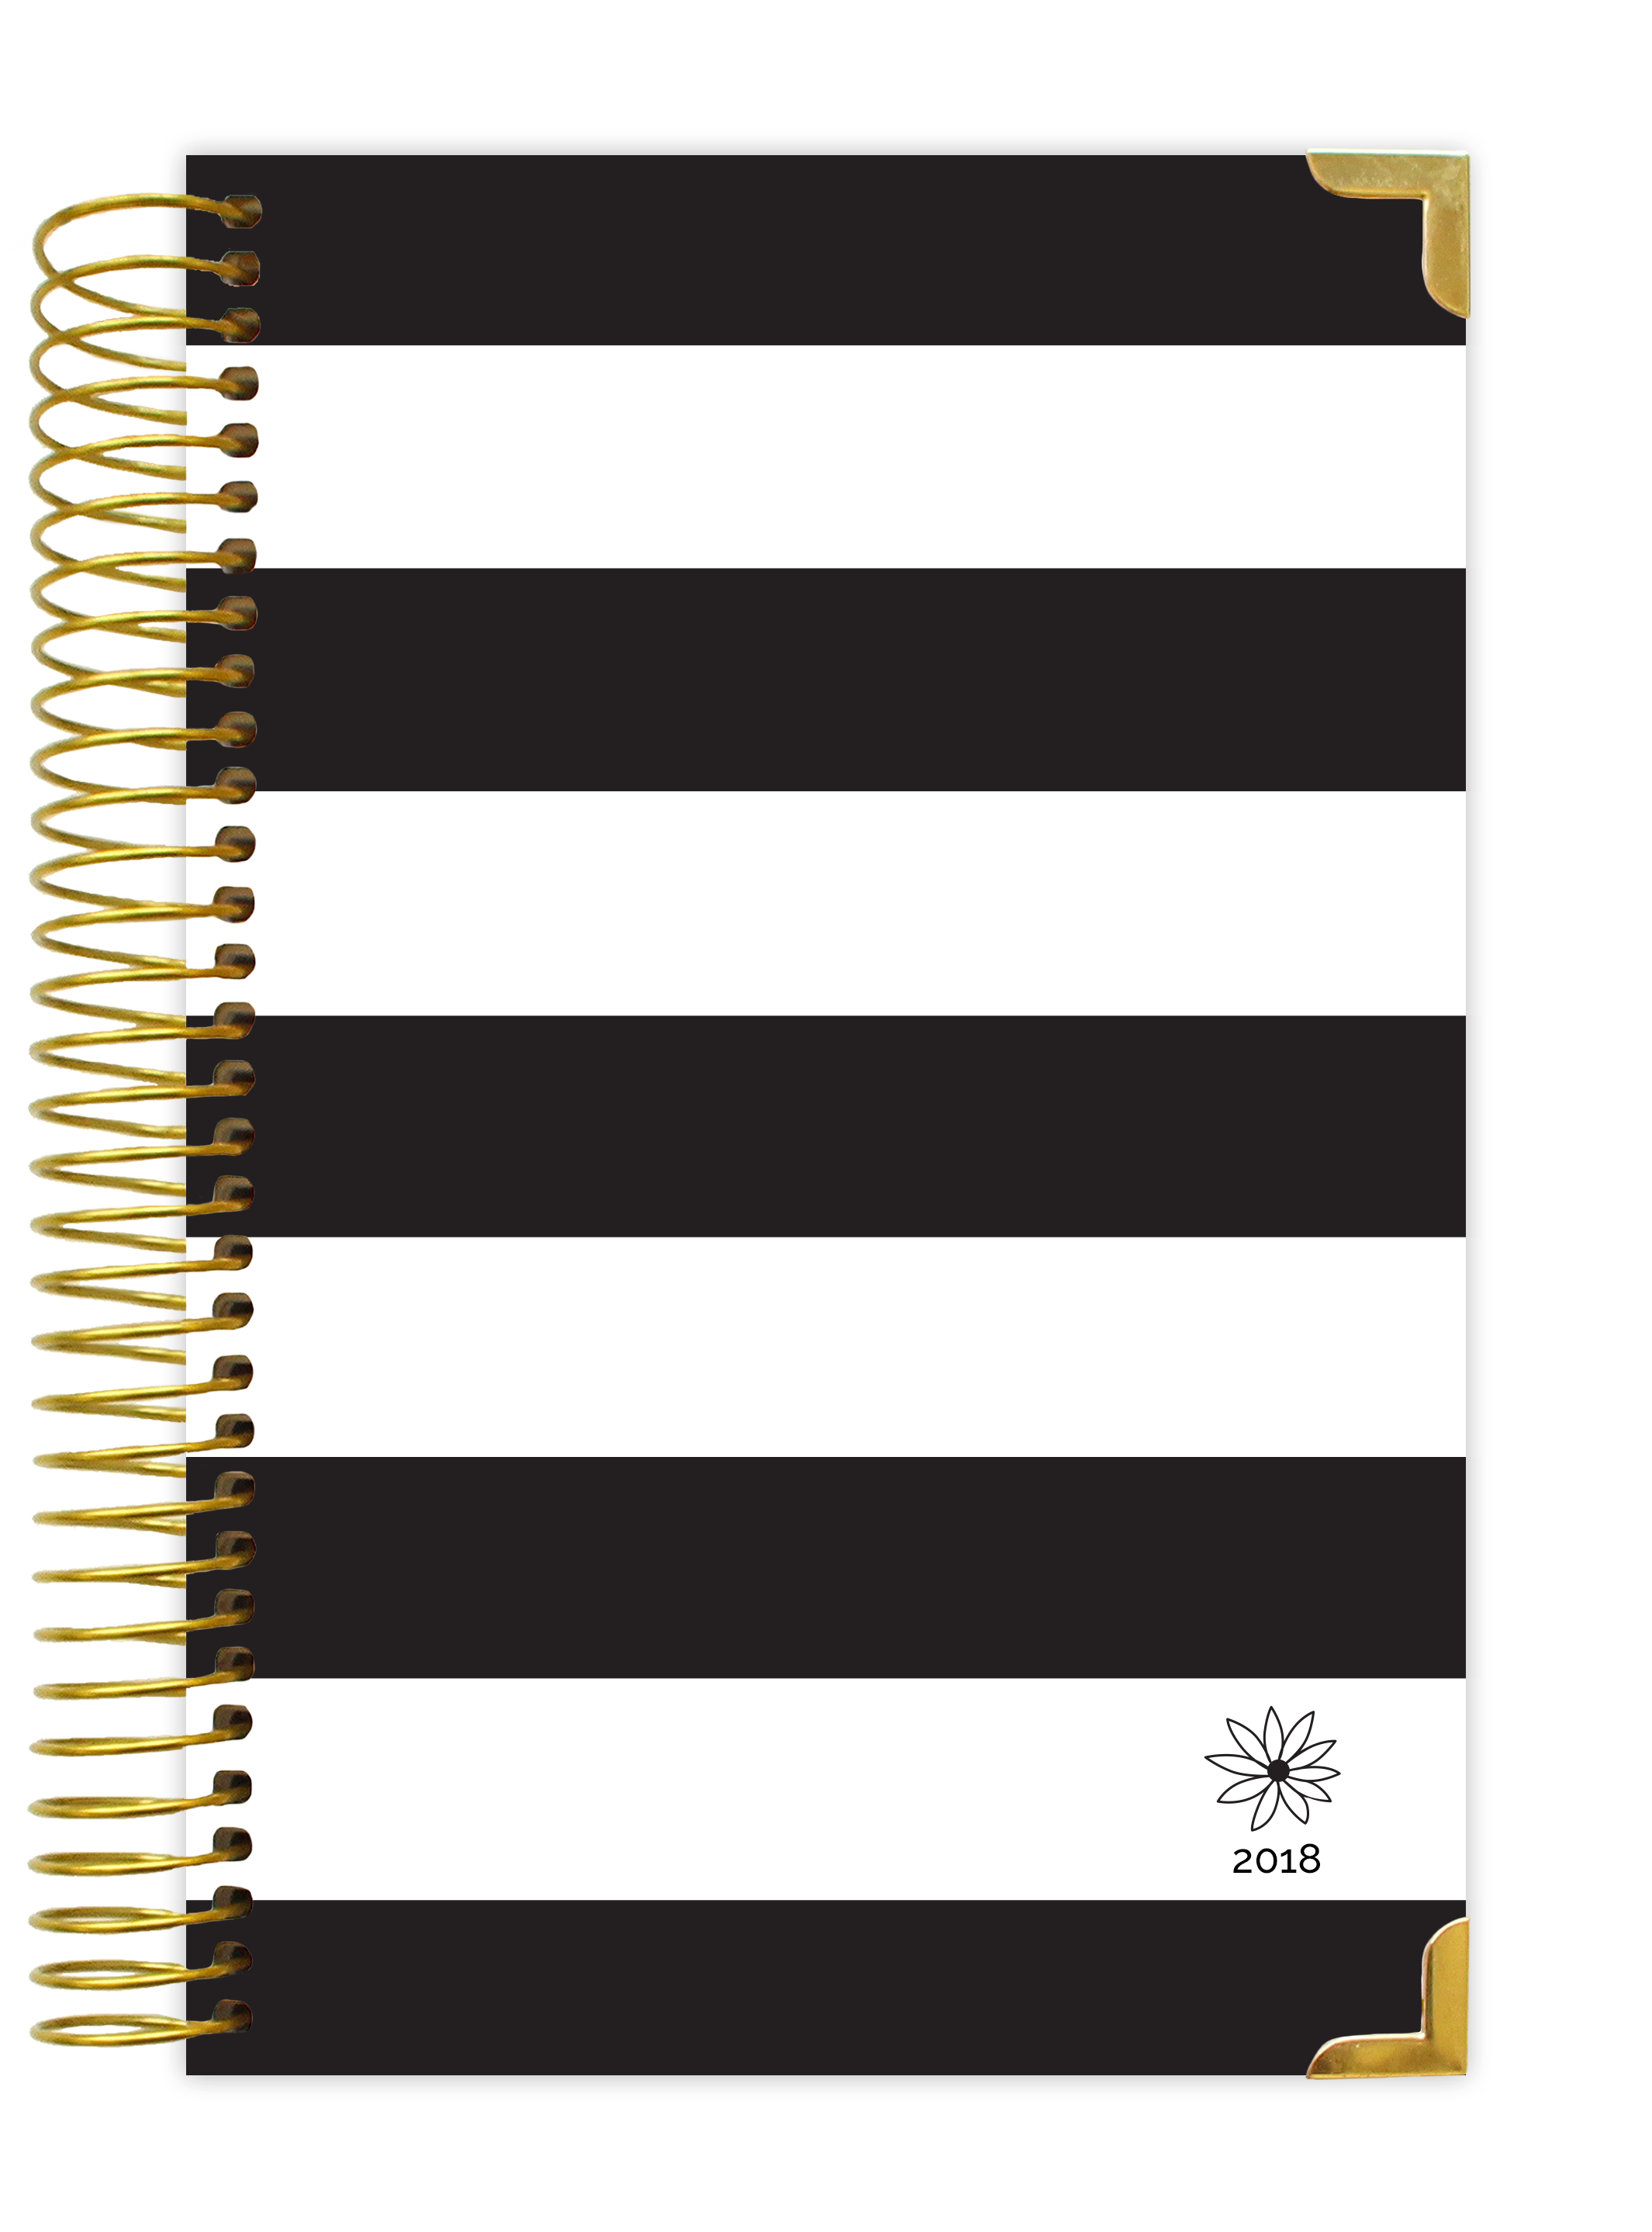 planner black white. Schedule clipart daily plan